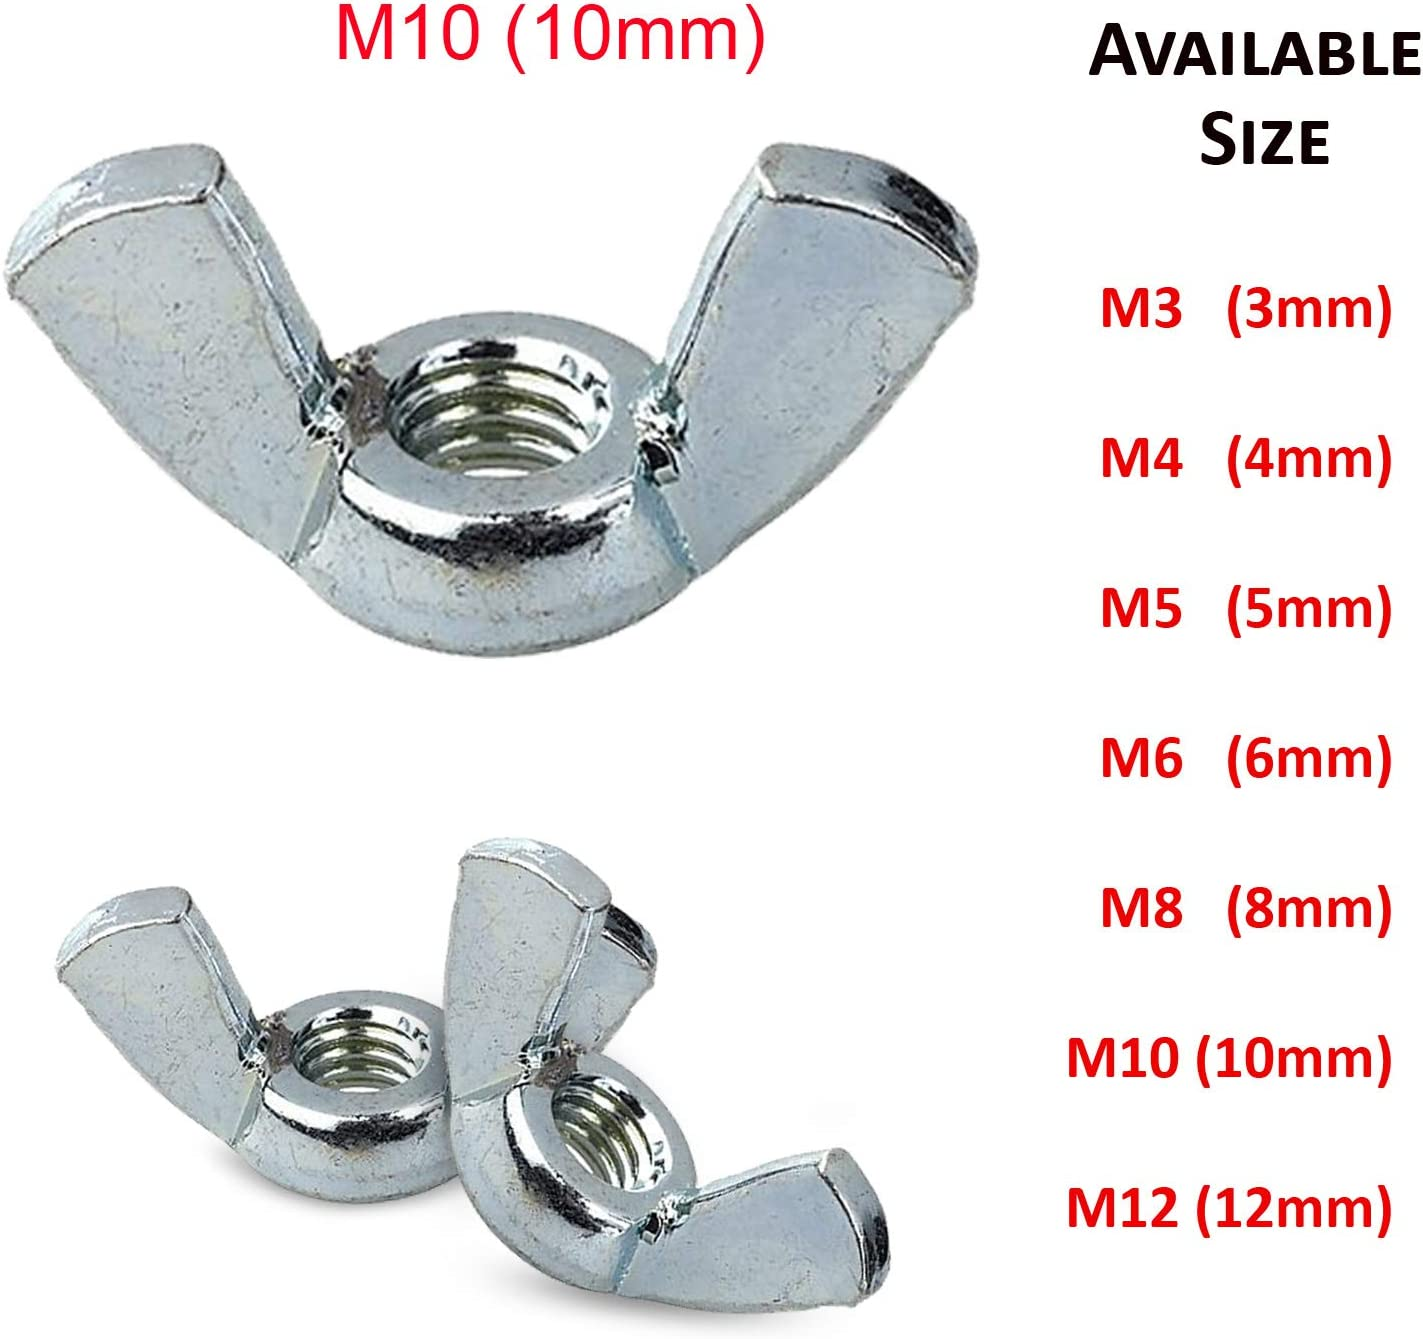 10 of Butterfly Wing Nuts 8Mm M8 Bzp Bright Zinc Plated Steel